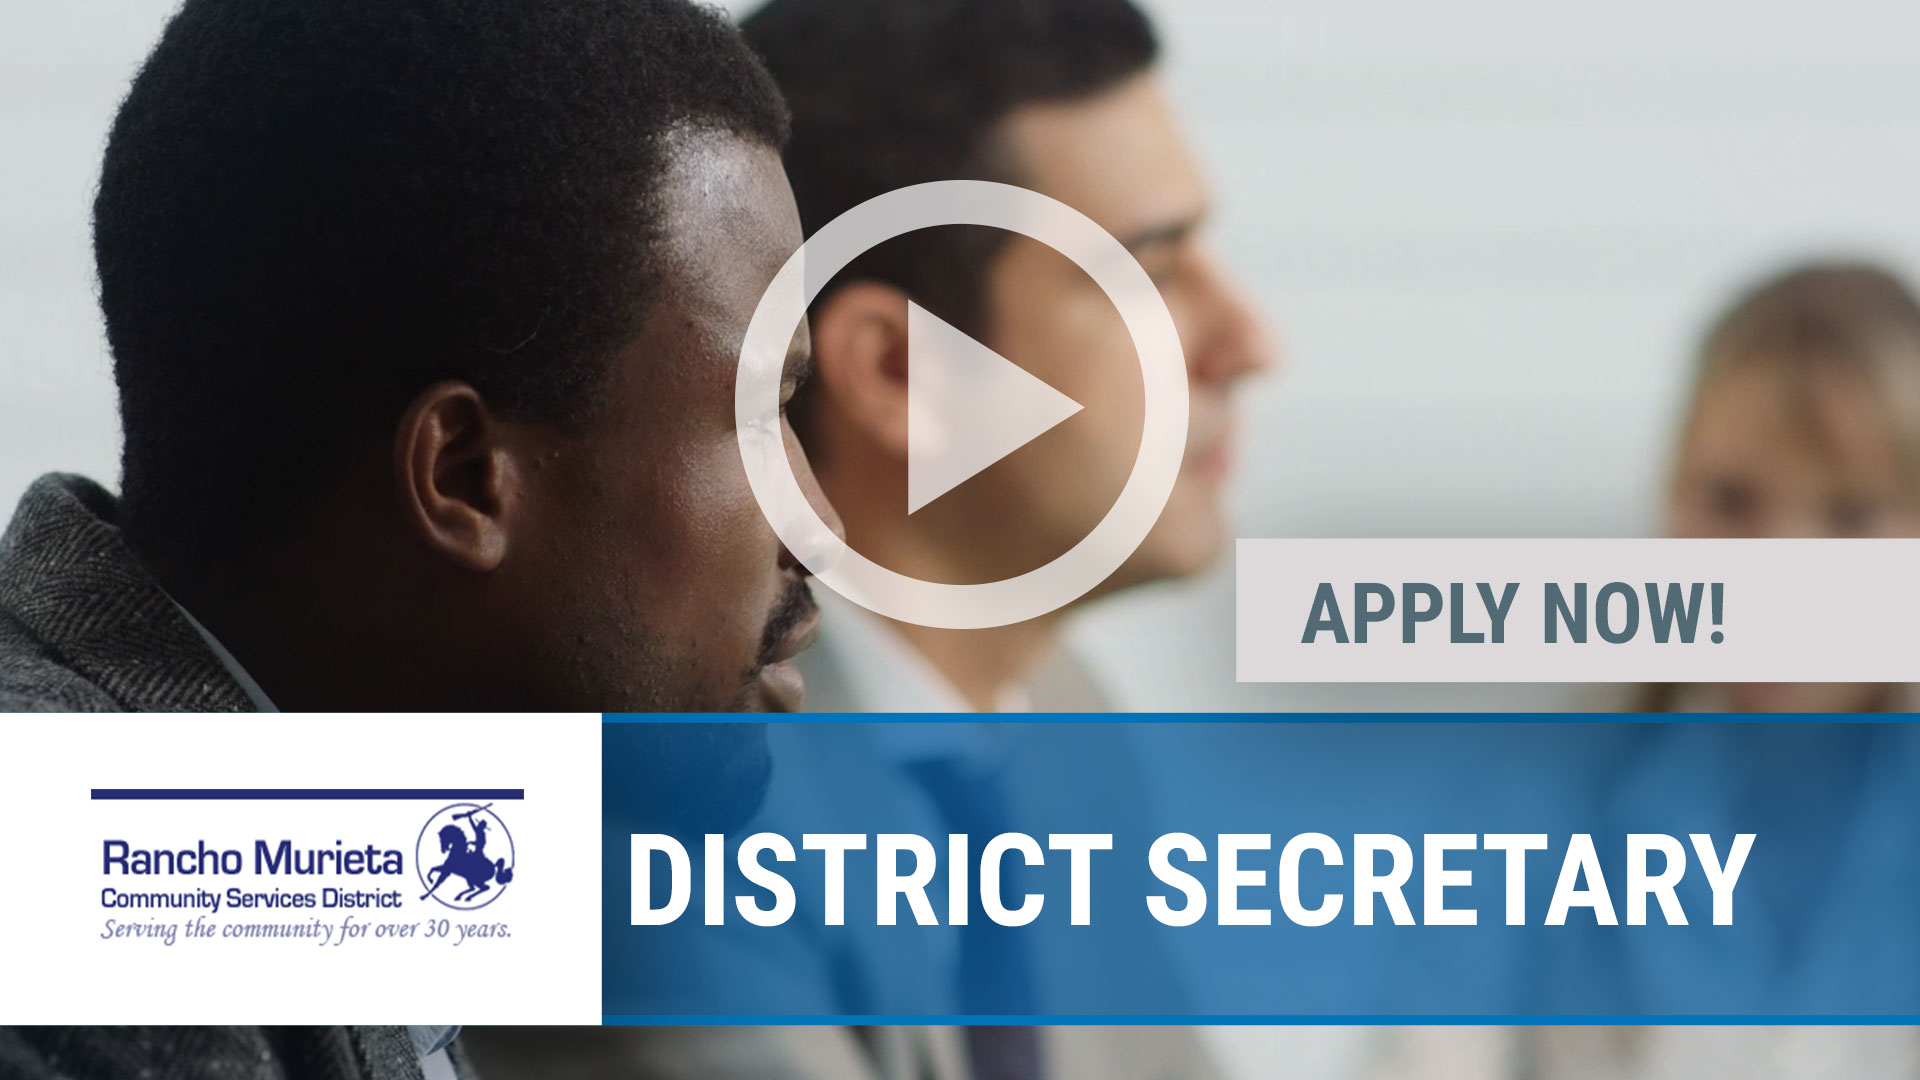 Watch our careers video for available job opening DISTRICT SECRETARY in Rancho Murieta, CA, USA